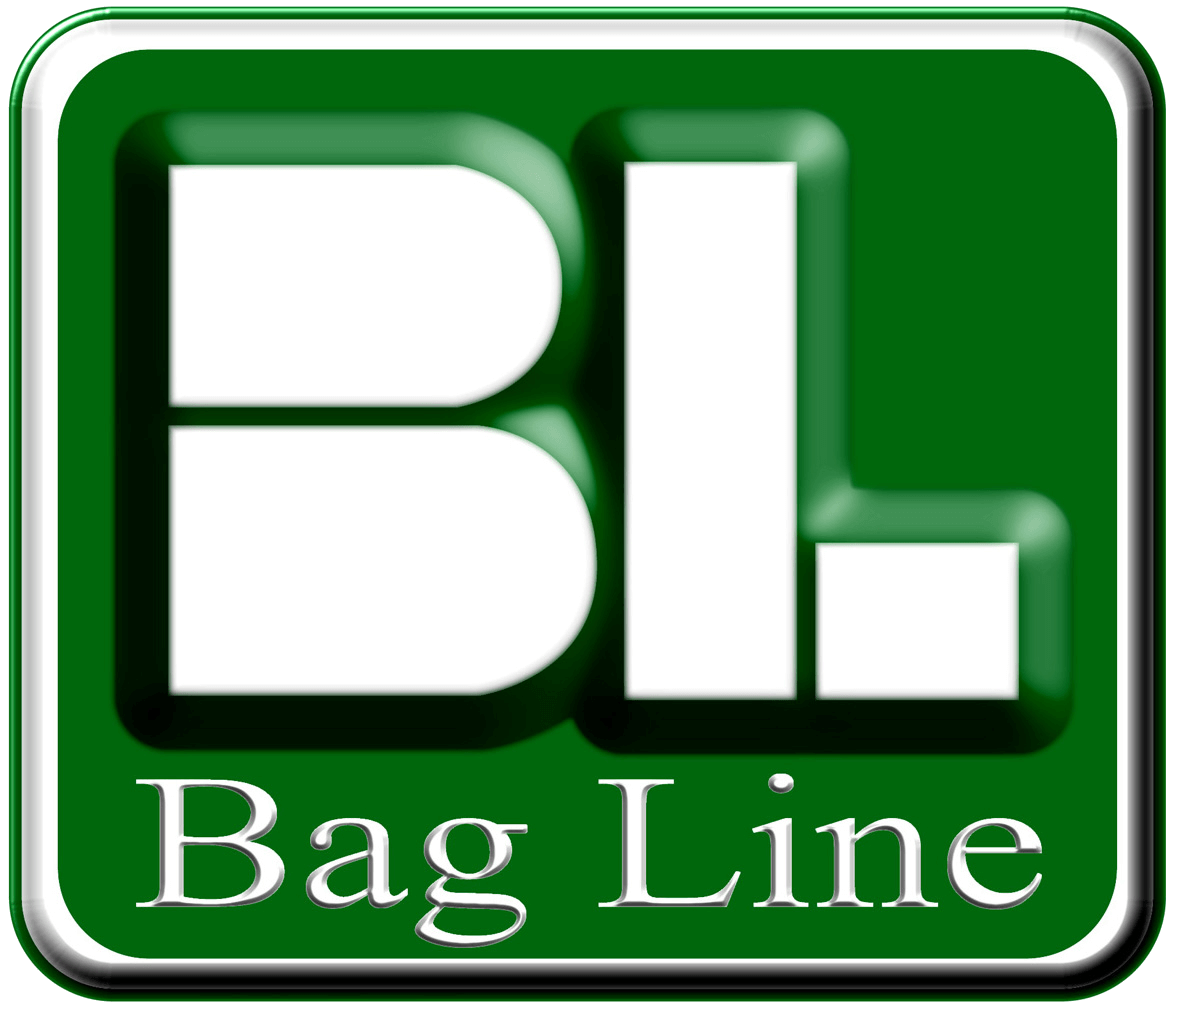 Bag Line France | Ensacheuses | Banderoleuses | Palettiseurs | Big Bag | Ingénierie